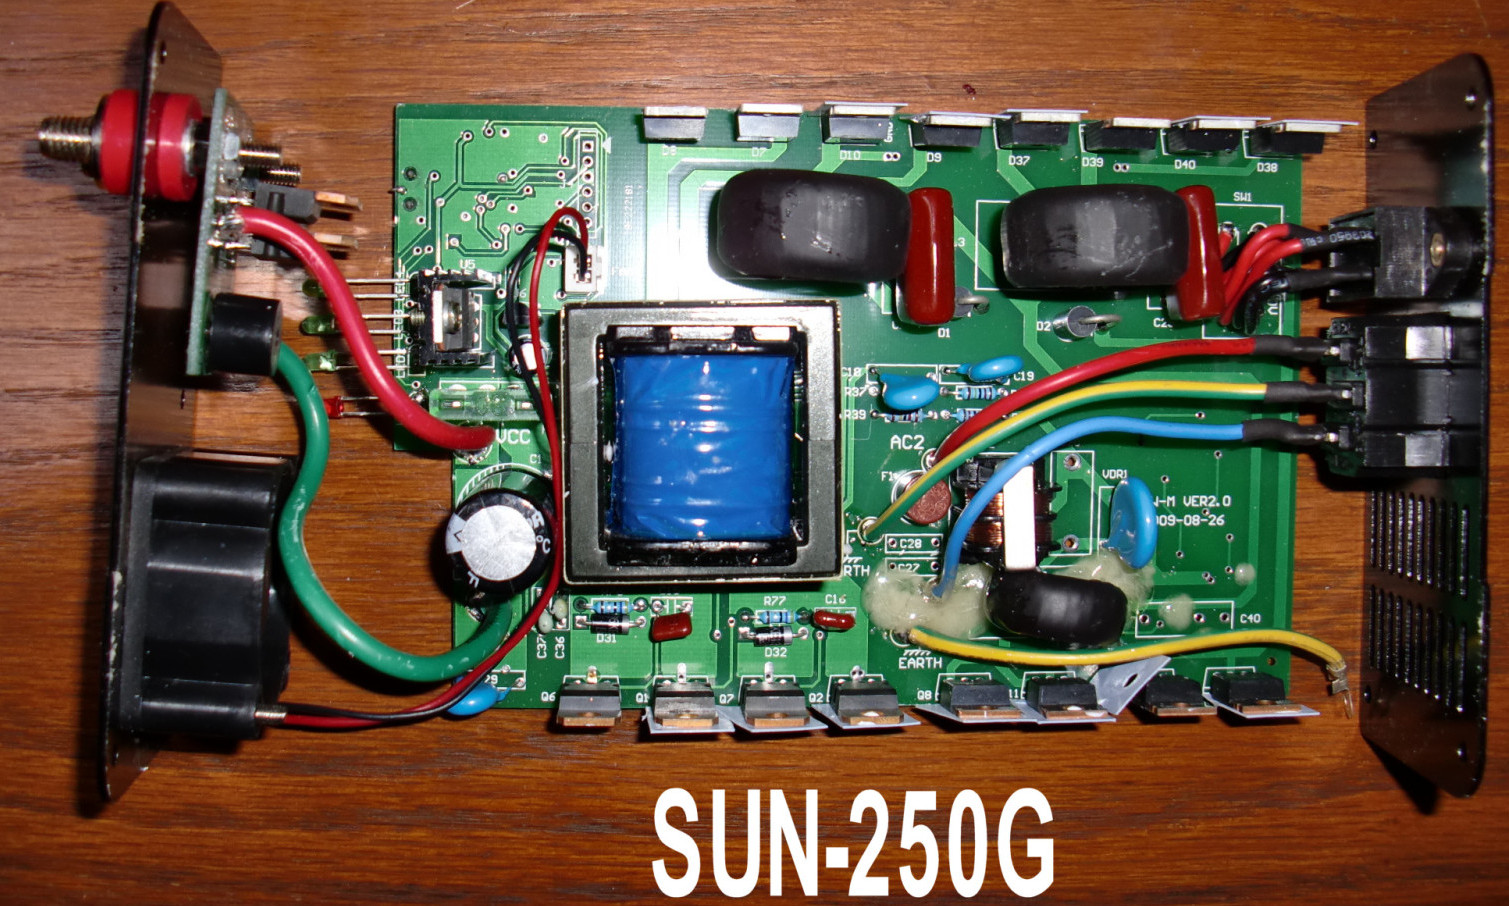 sun-250-top-board-closeup1.jpg